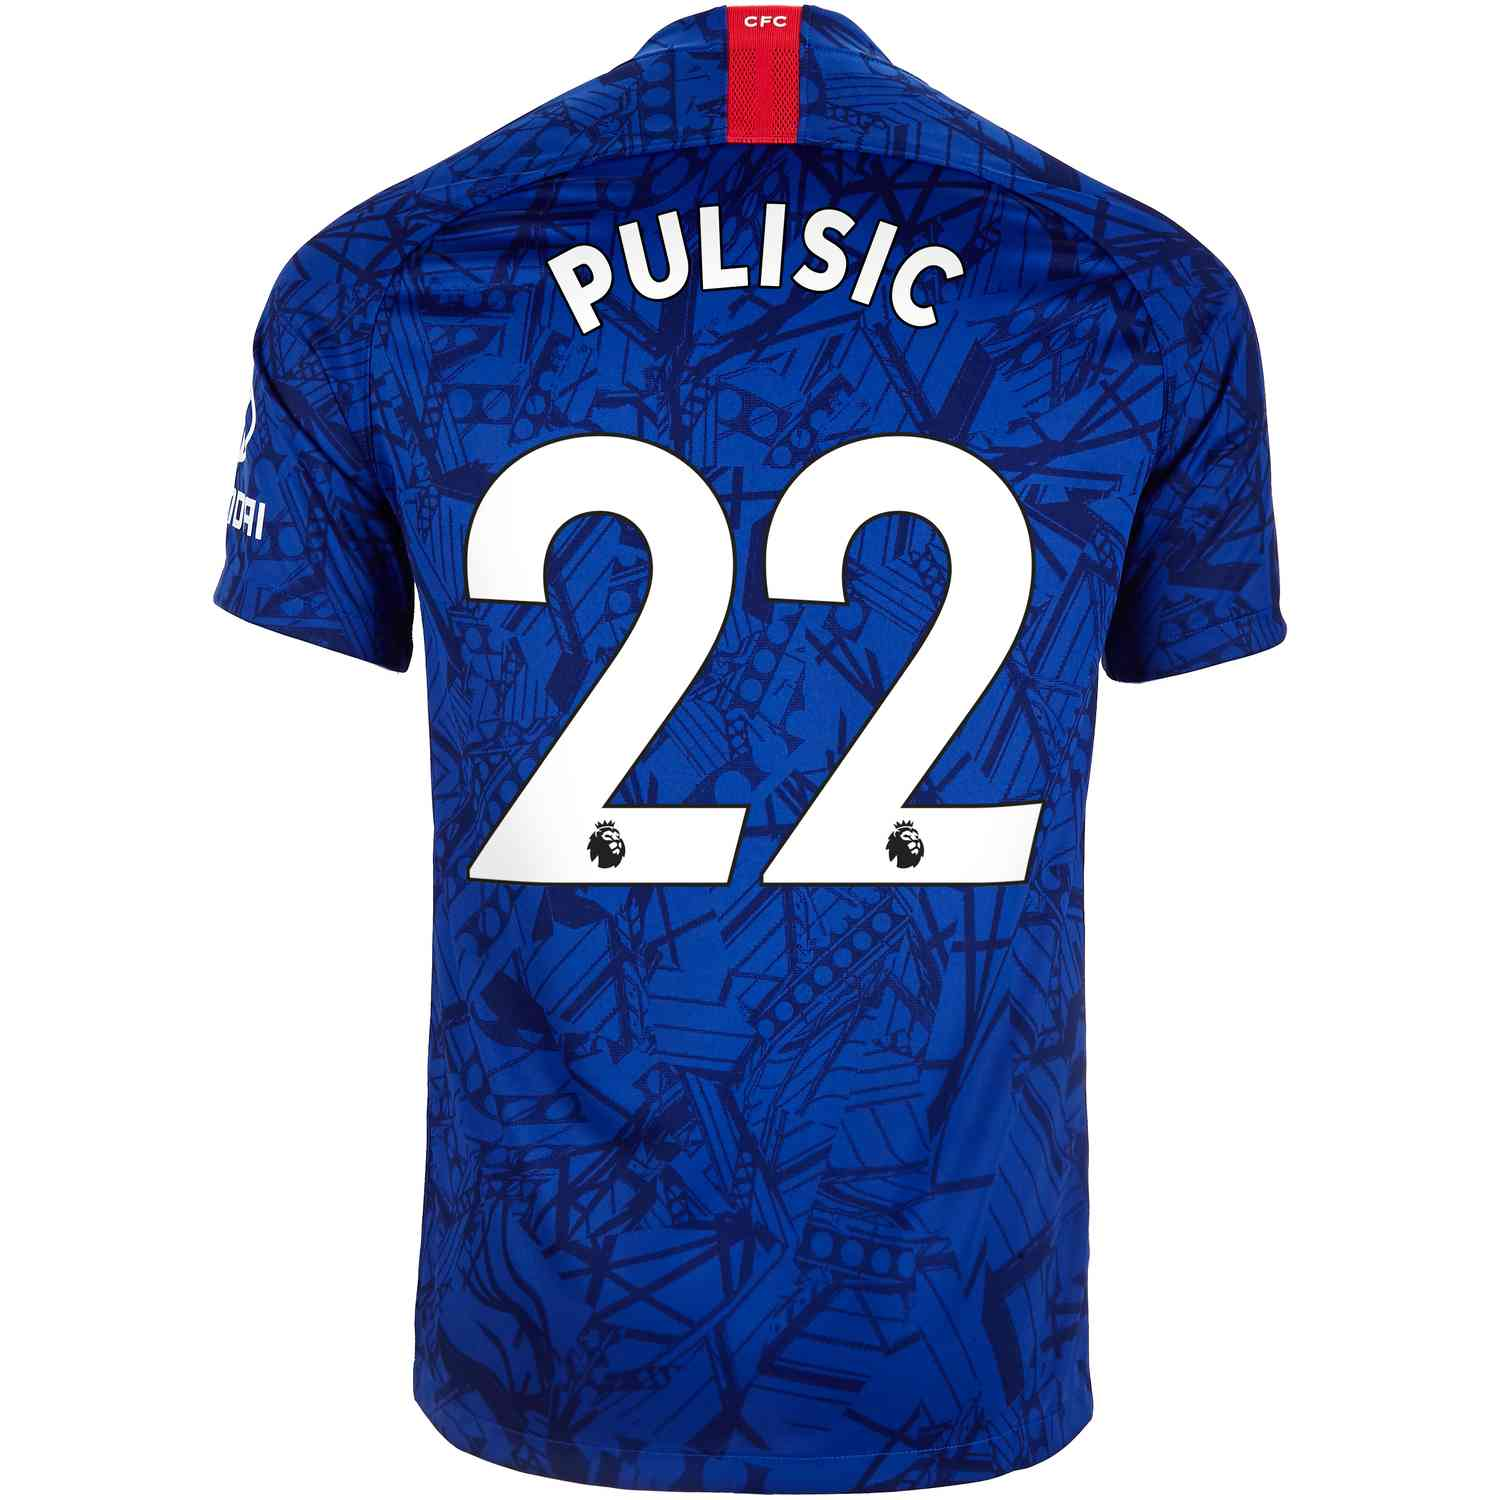 brand new c9961 d76e1 2019/20 Christian Pulisic Chelsea Home Jersey